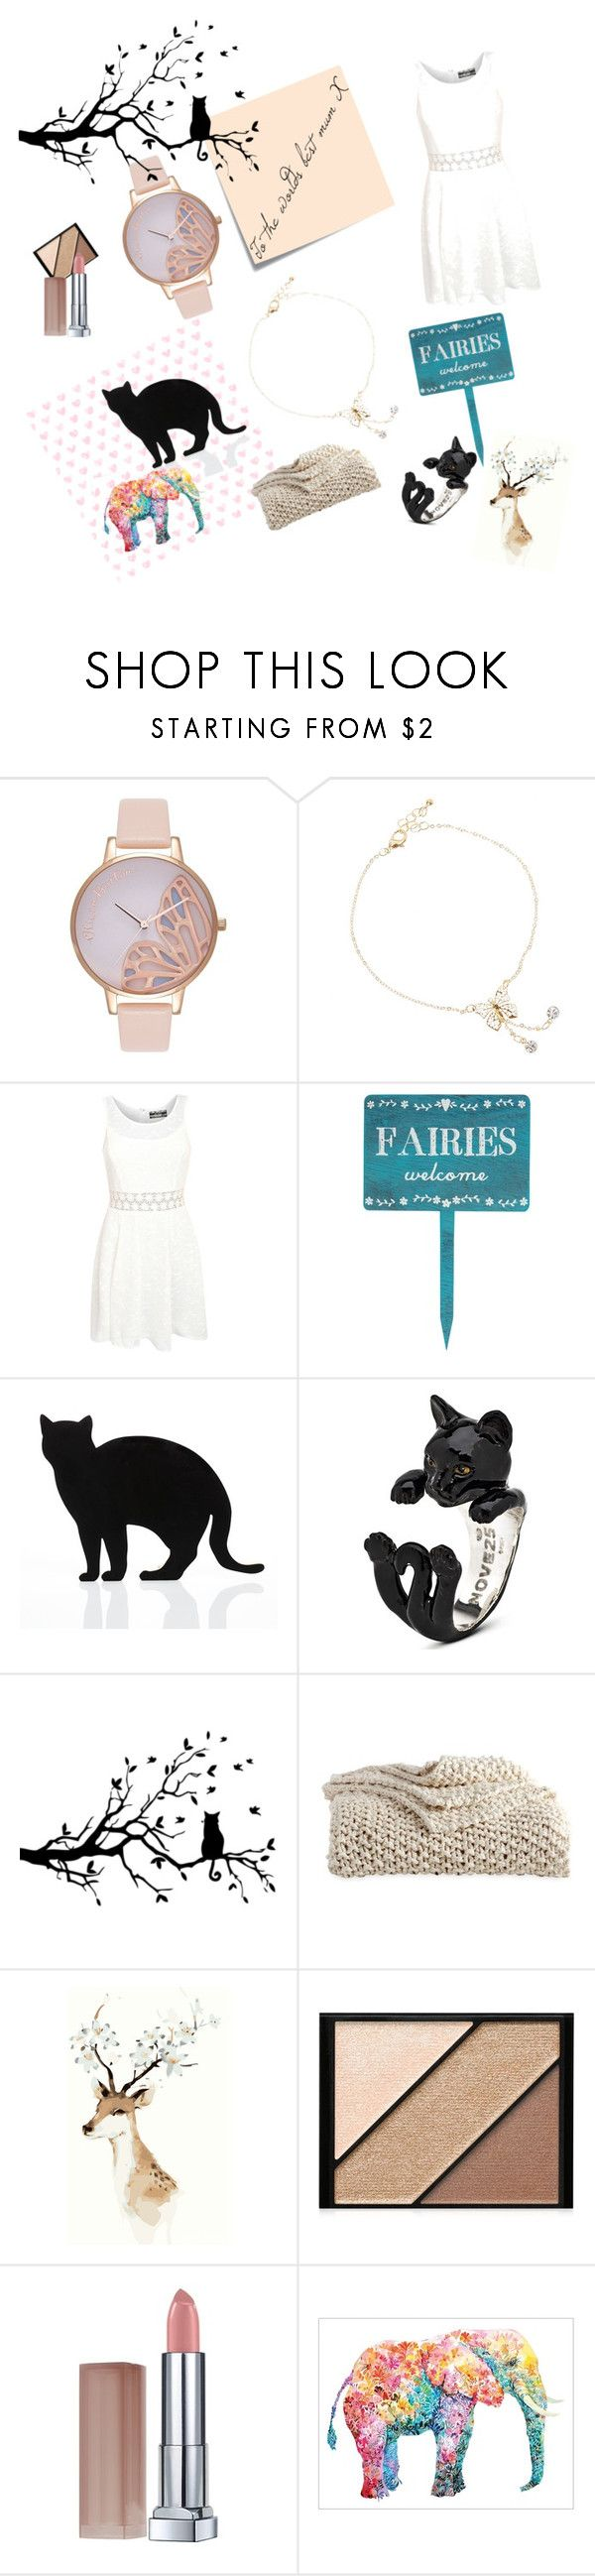 """""""to the worlds best mum💑"""" by debbie-riley ❤ liked on Polyvore featuring Post-It, Olivia Burton, Pilot, 157+173 designers, DKNY, Elizabeth Arden and Maybelline"""